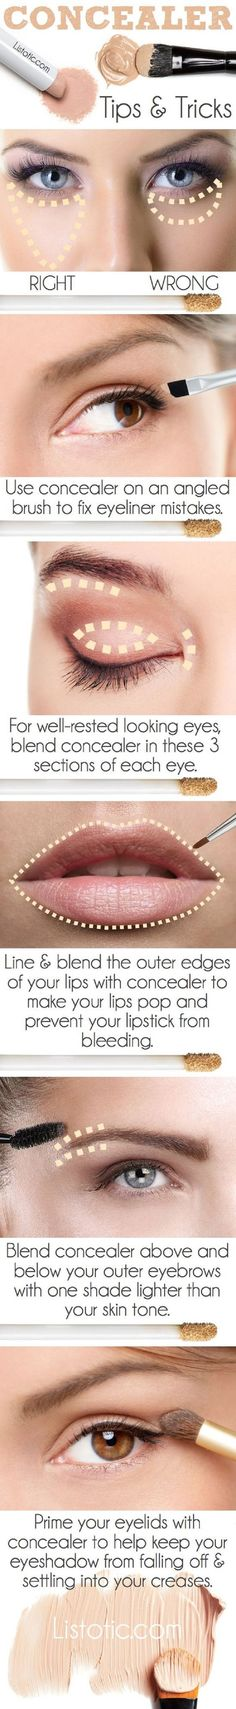 Use Your Concealer The Right Way - 13 Best Makeup Tutorials and Infographics…